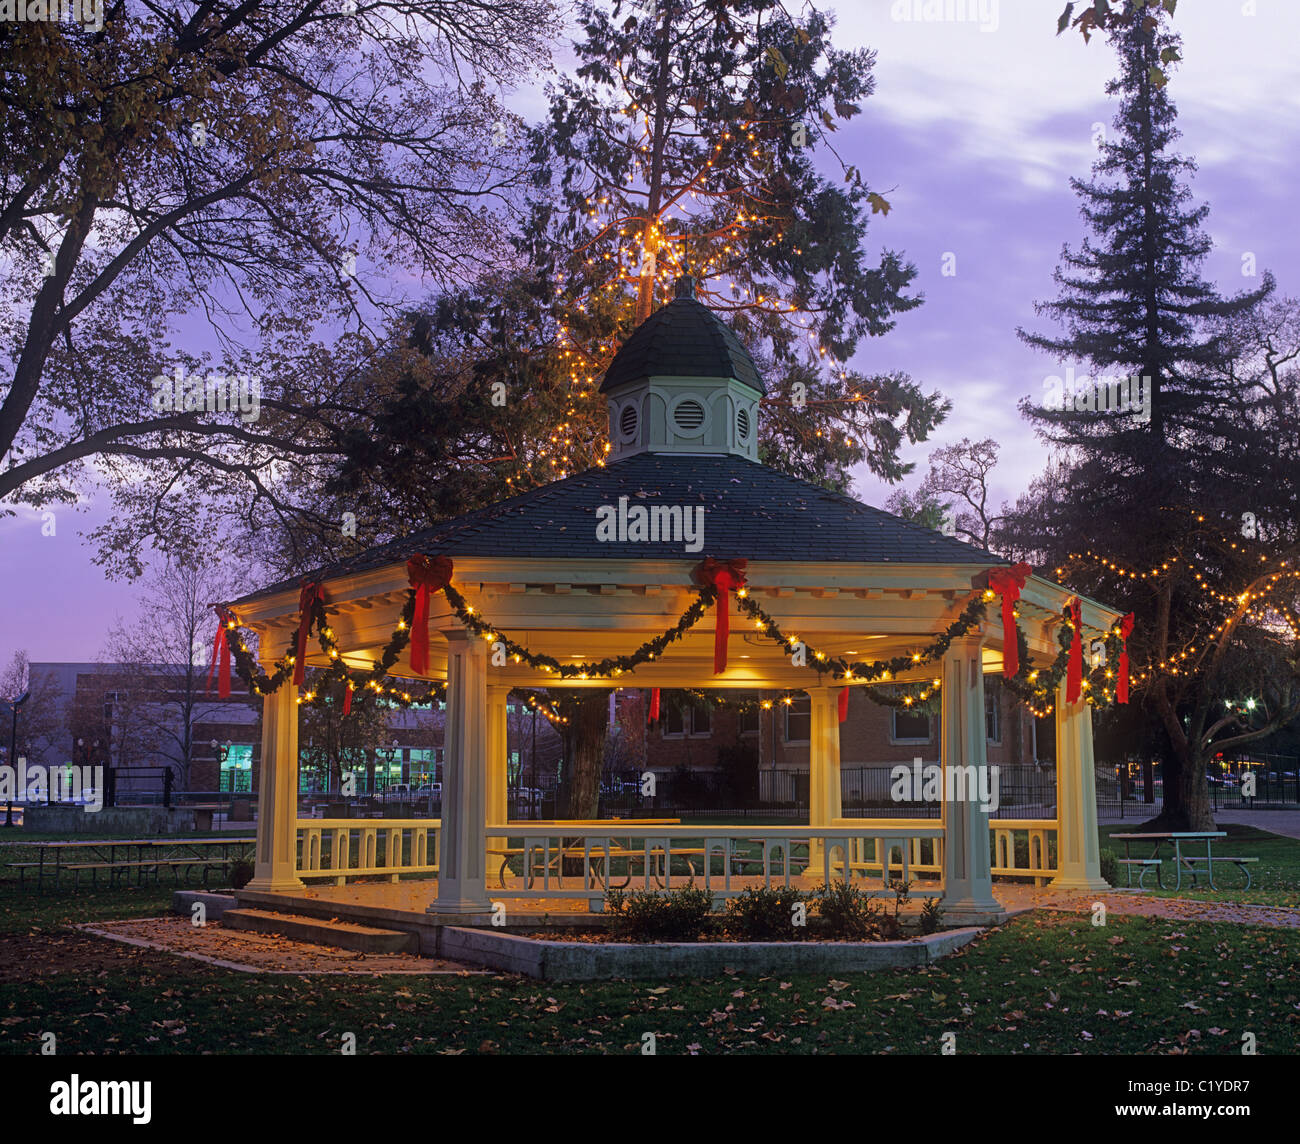 Gazebo In Paso Robles City Park Decorated For Christmas